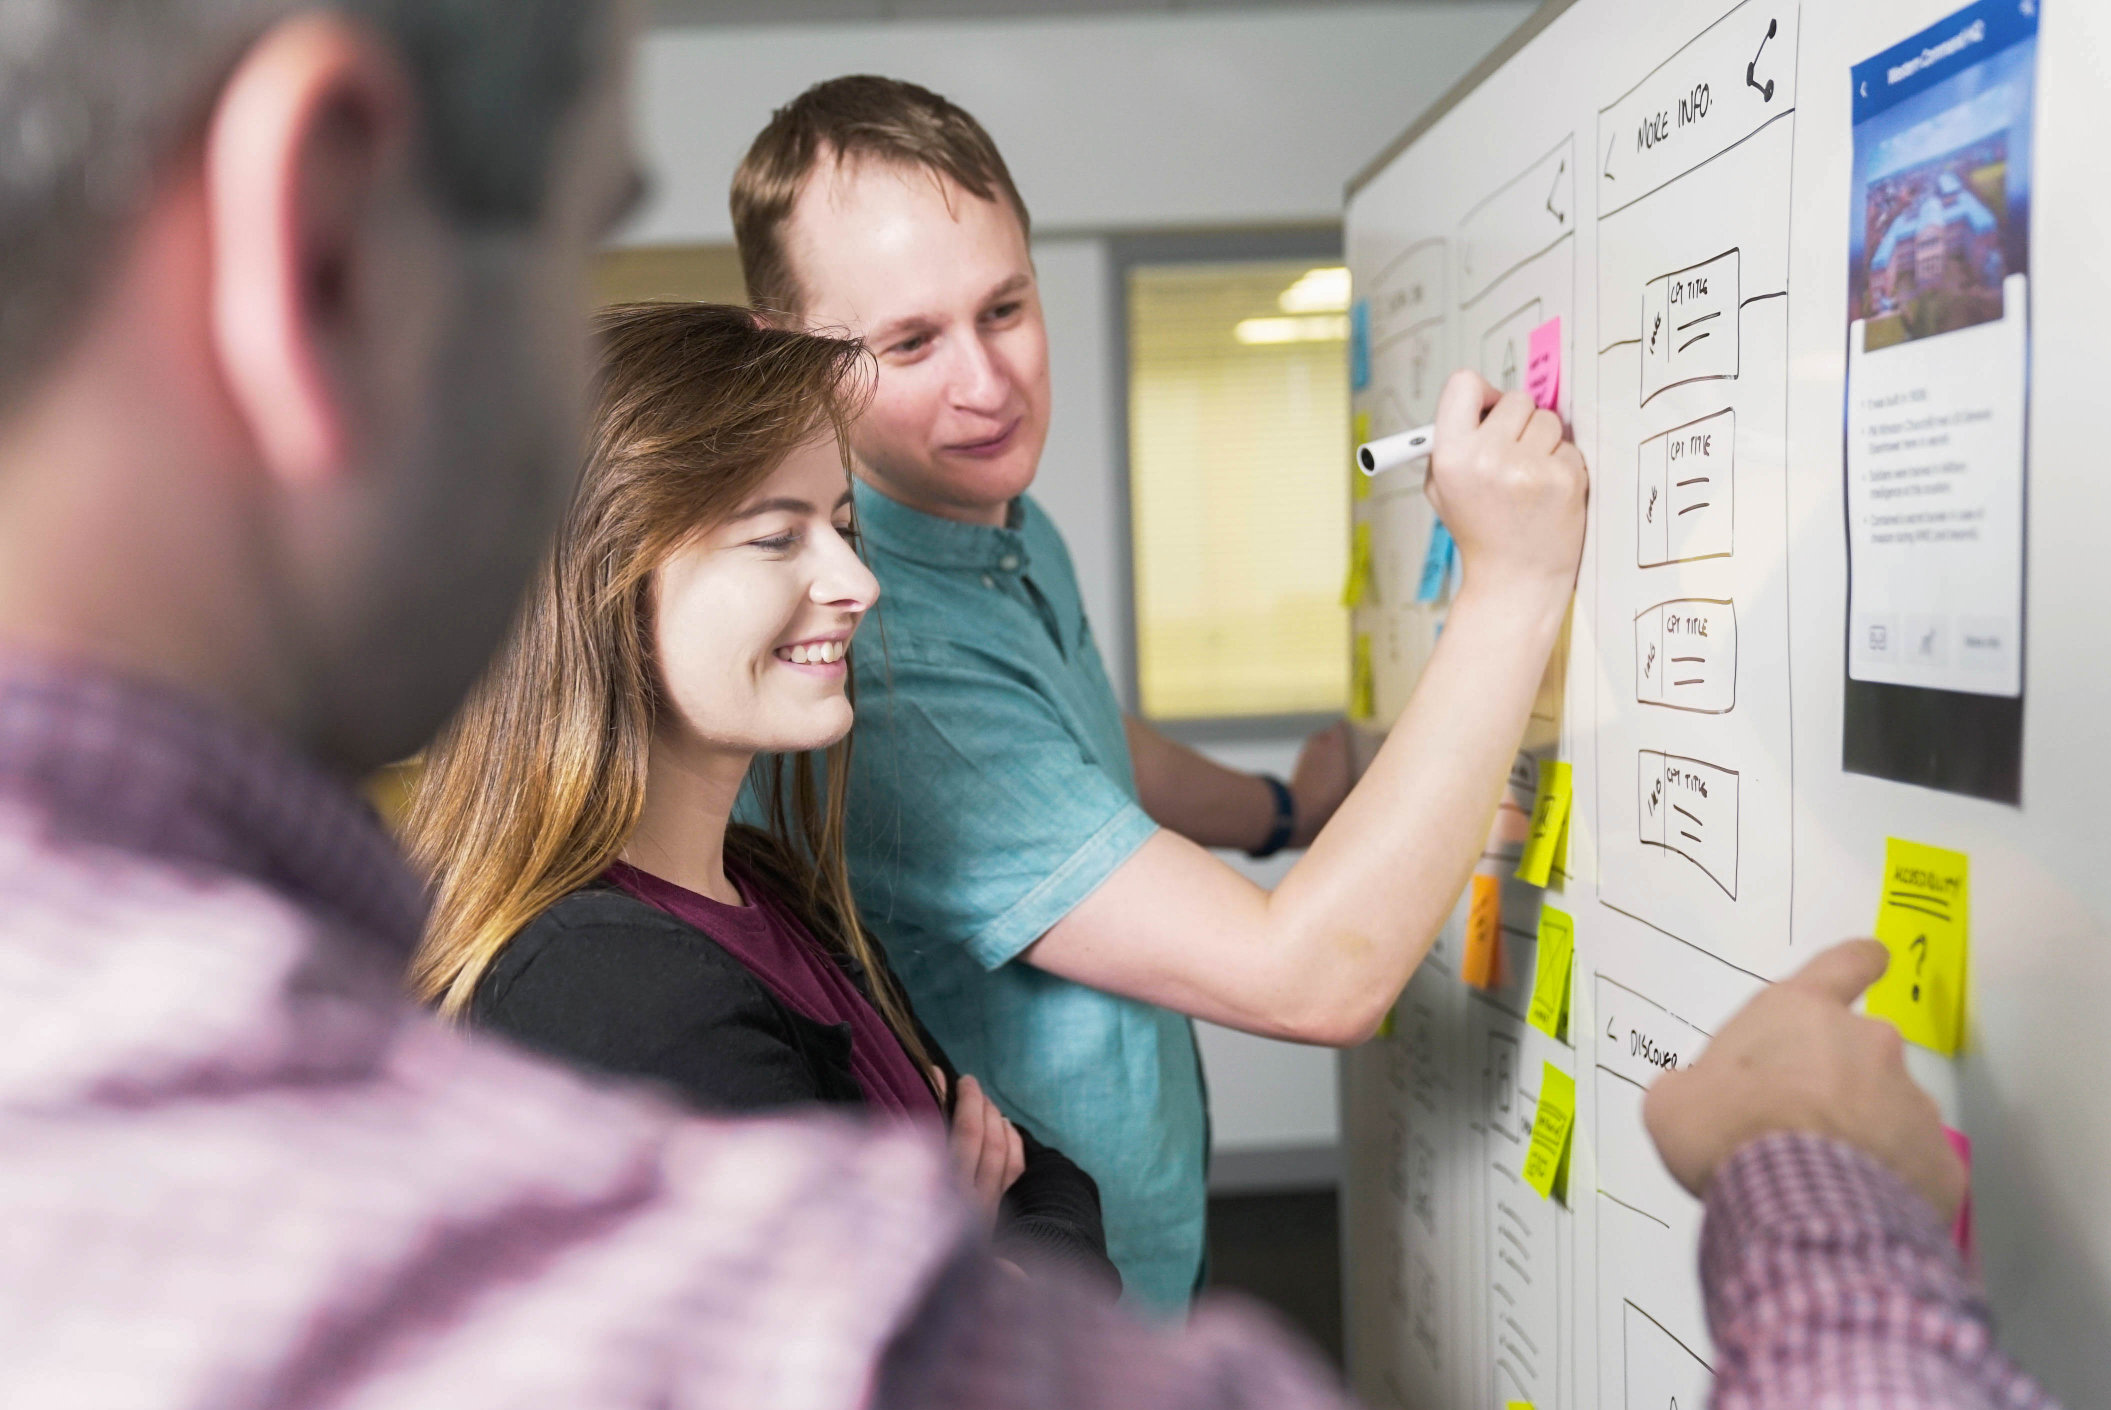 Our Project Process – What is it like working with us? Why do we use an agile development methodology?